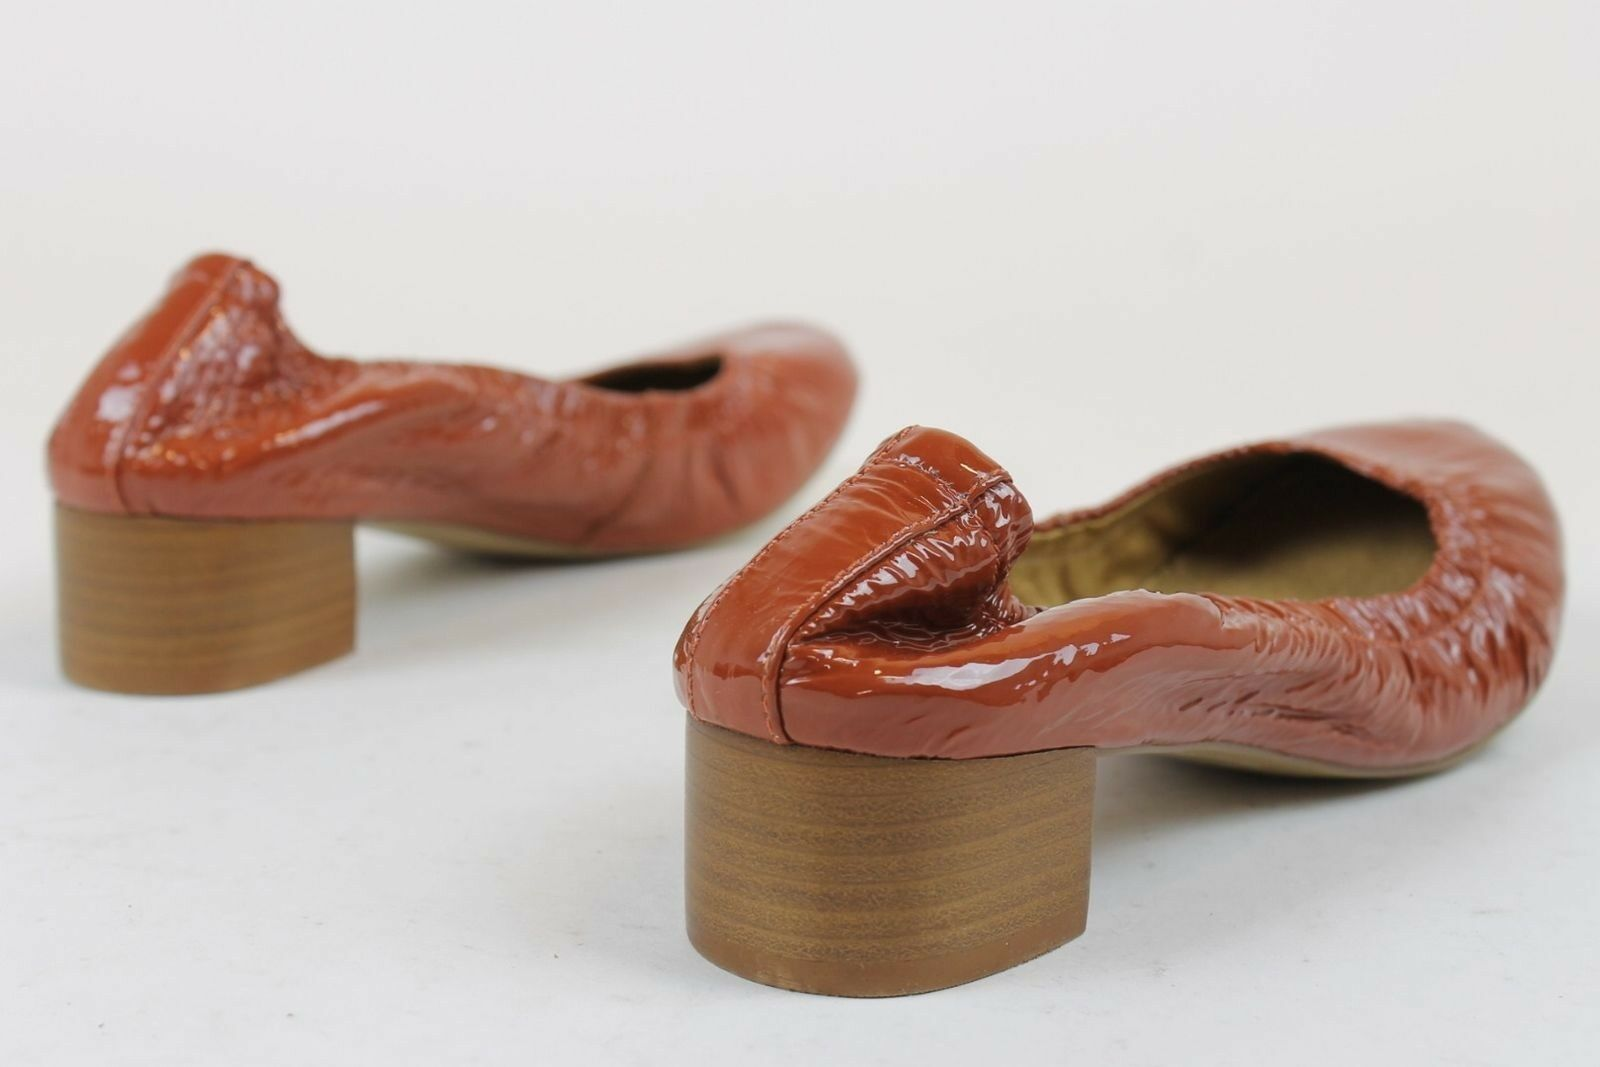 Anthropologie Gilen 6.5 Stacked Heels Ruby ROT US 7 US 6.5 Gilen f8f5b4